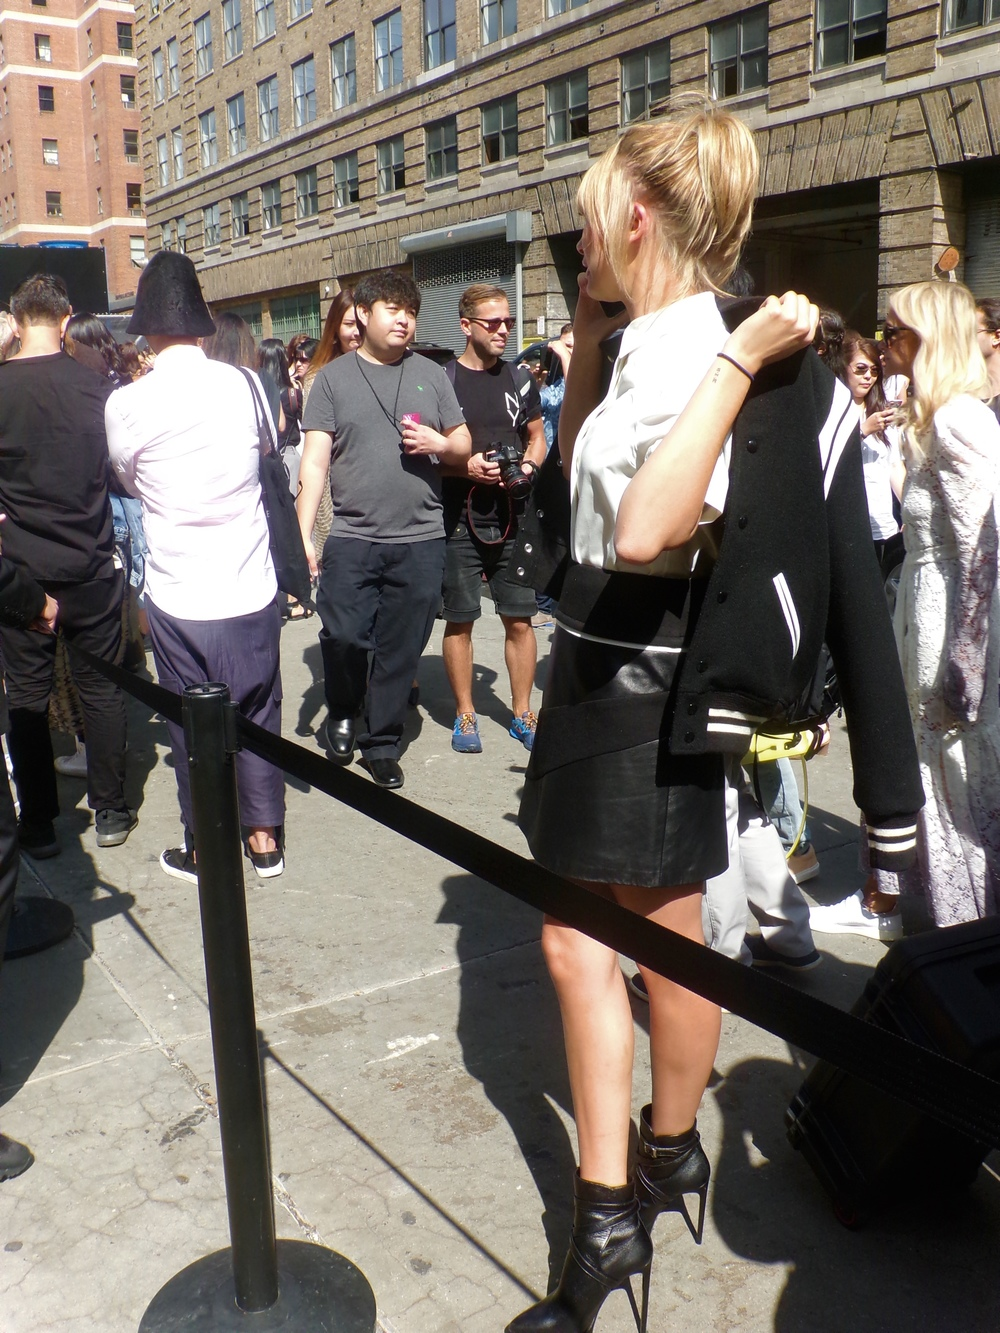 The Beautiful Hailey Baldwin in line for Public School. She is even more beautiful in person.